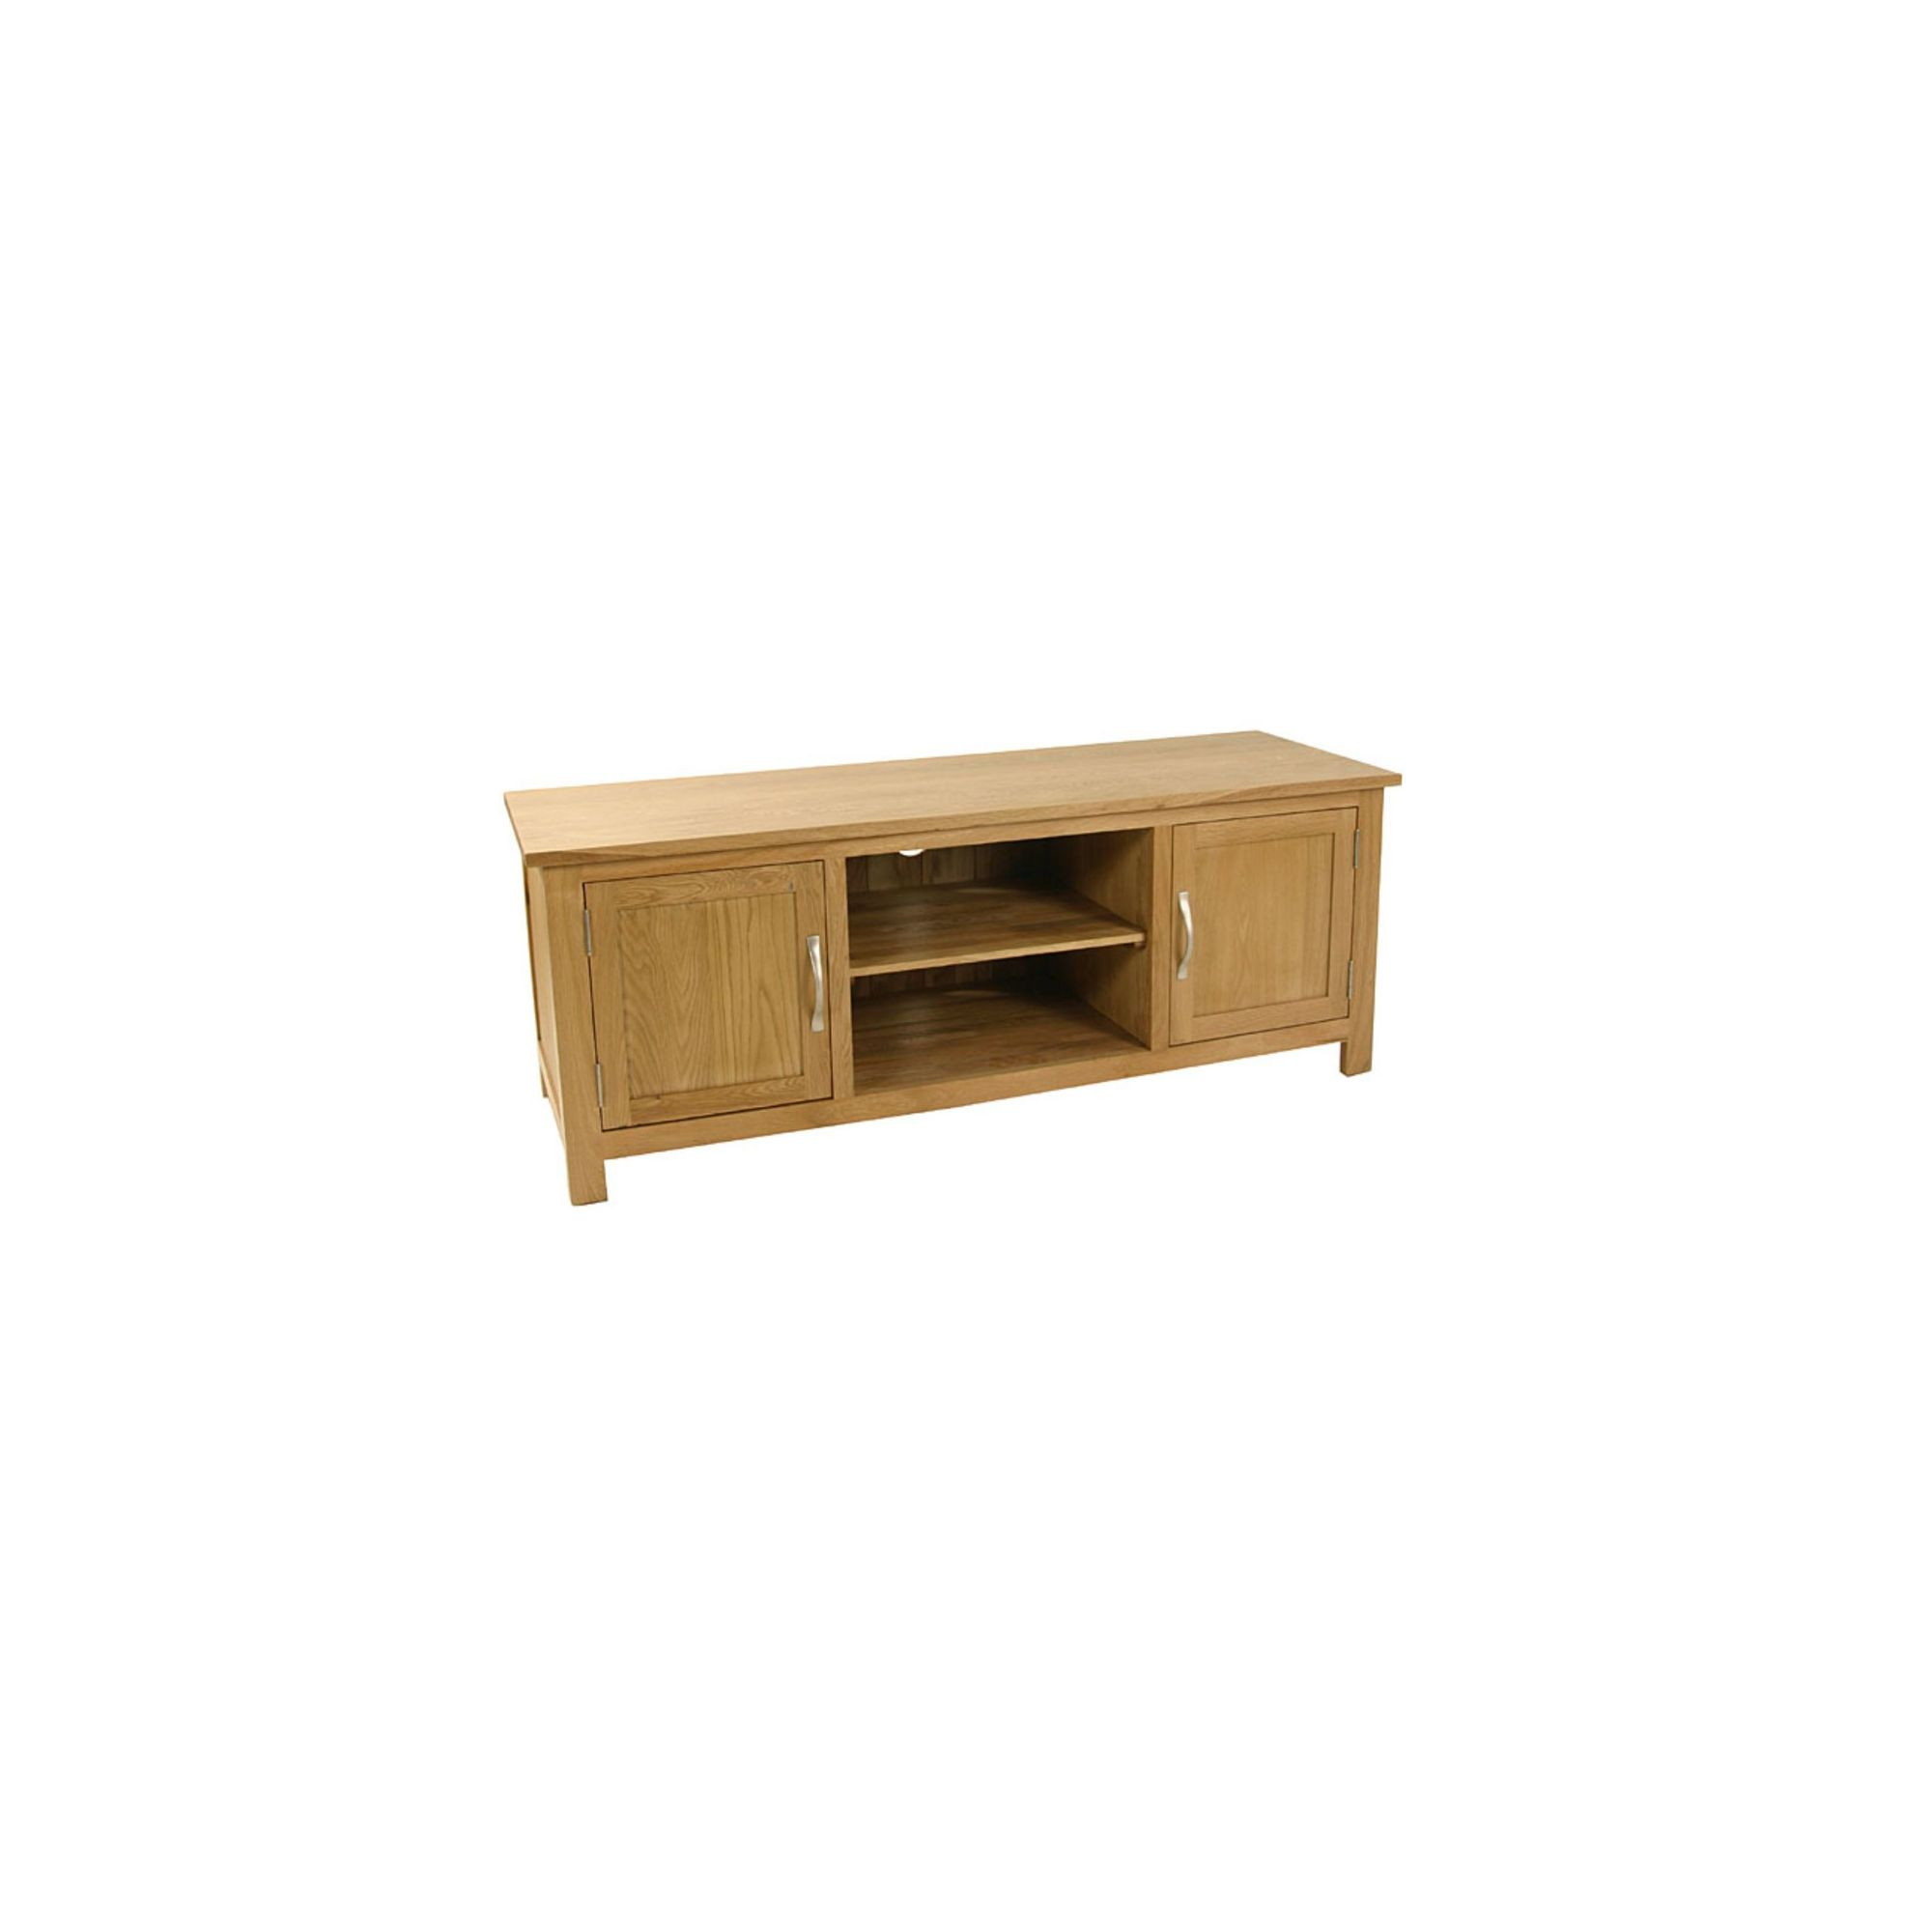 Kelburn Furniture Essentials 125cm Plasma TV Stand in Light Oak Stain and Satin Lacquer at Tesco Direct